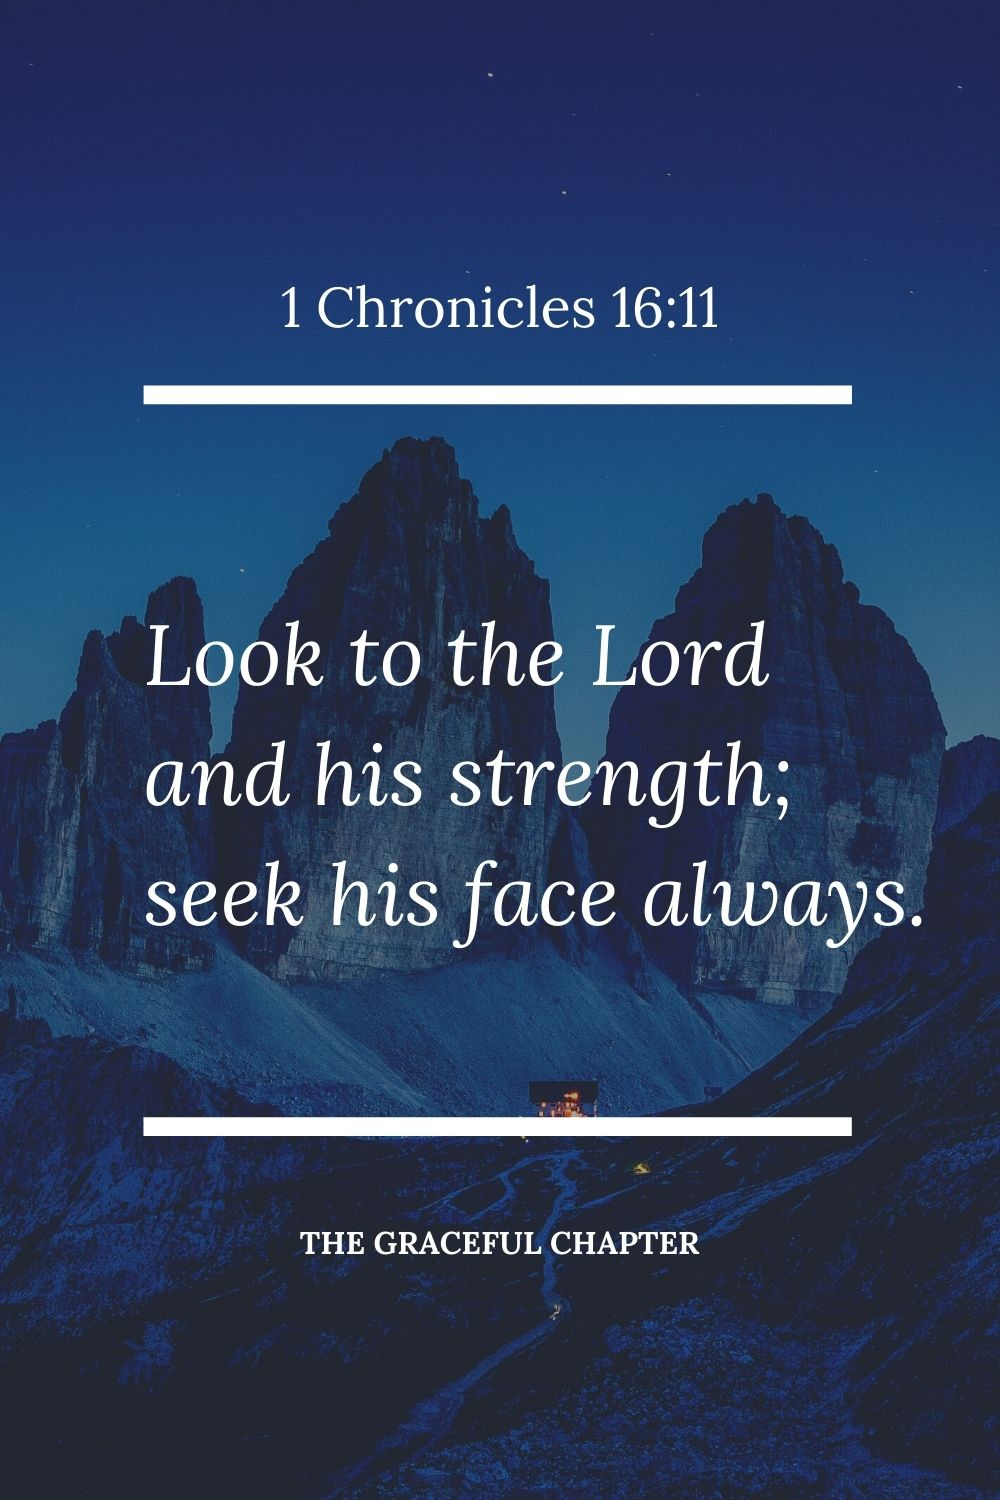 Look to the Lord and his strength; seek his face always. 1 Chronicles 16:11